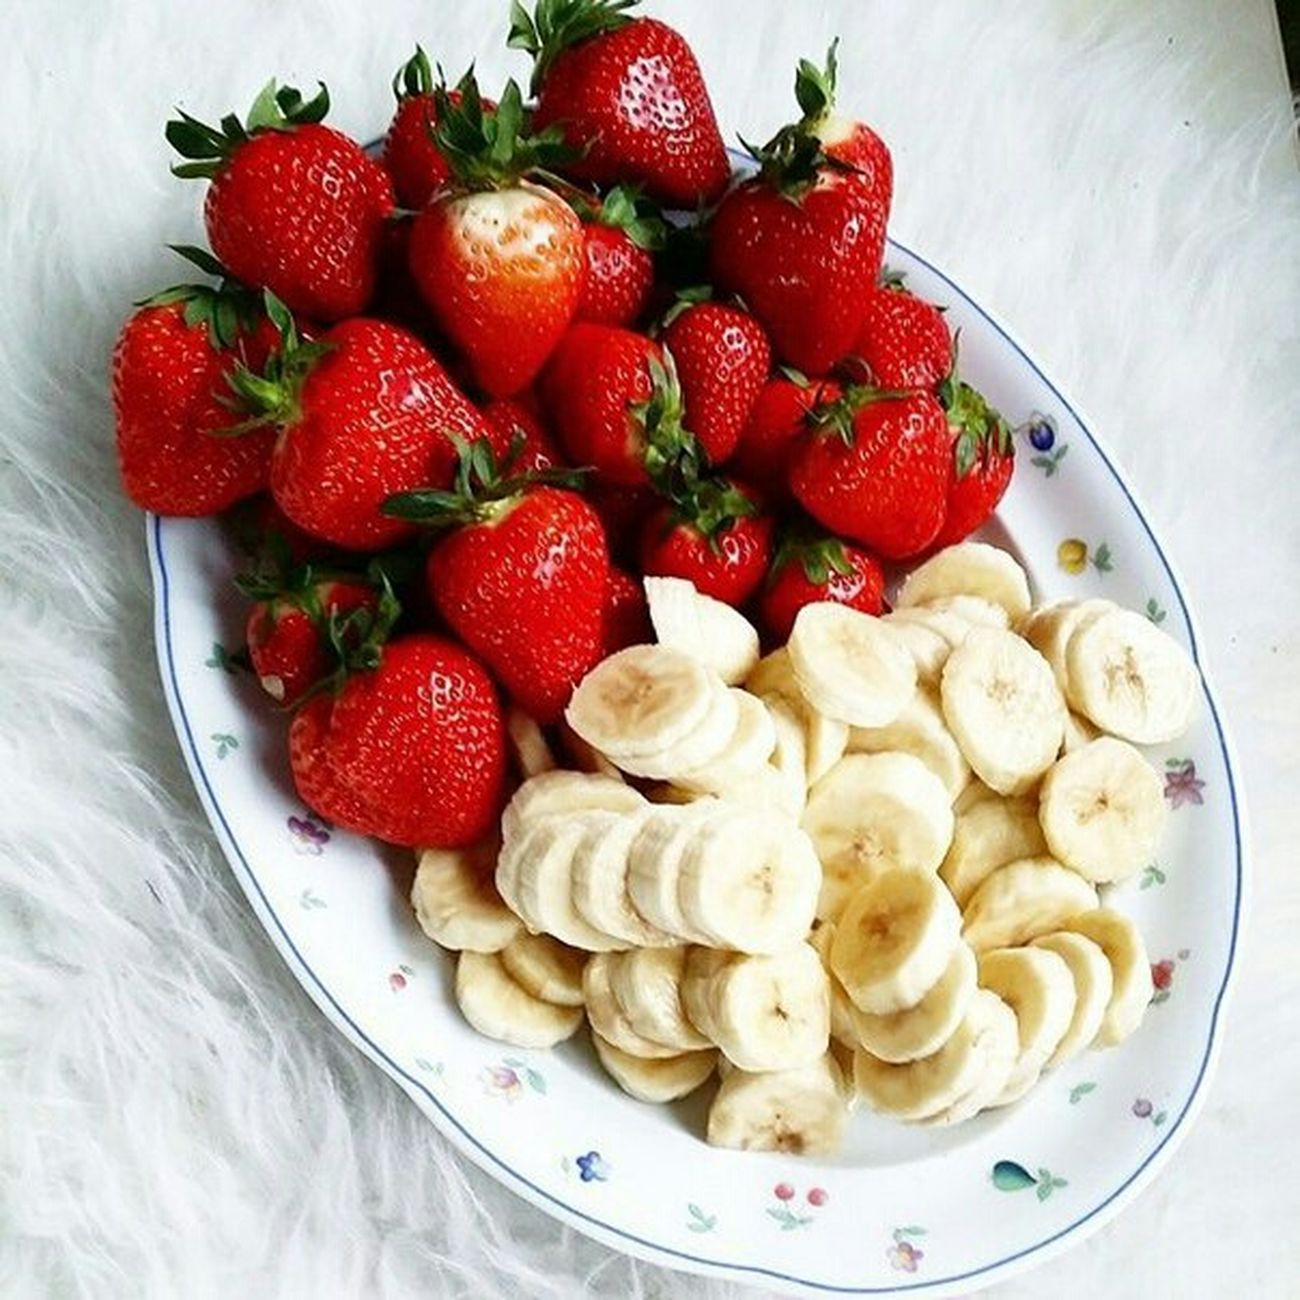 Tasty😋 Mmmm☺ Food <3 Love <3 Breakfast ♥ Strawberries ♡ Bananas Fruits ♡ Very Tasty